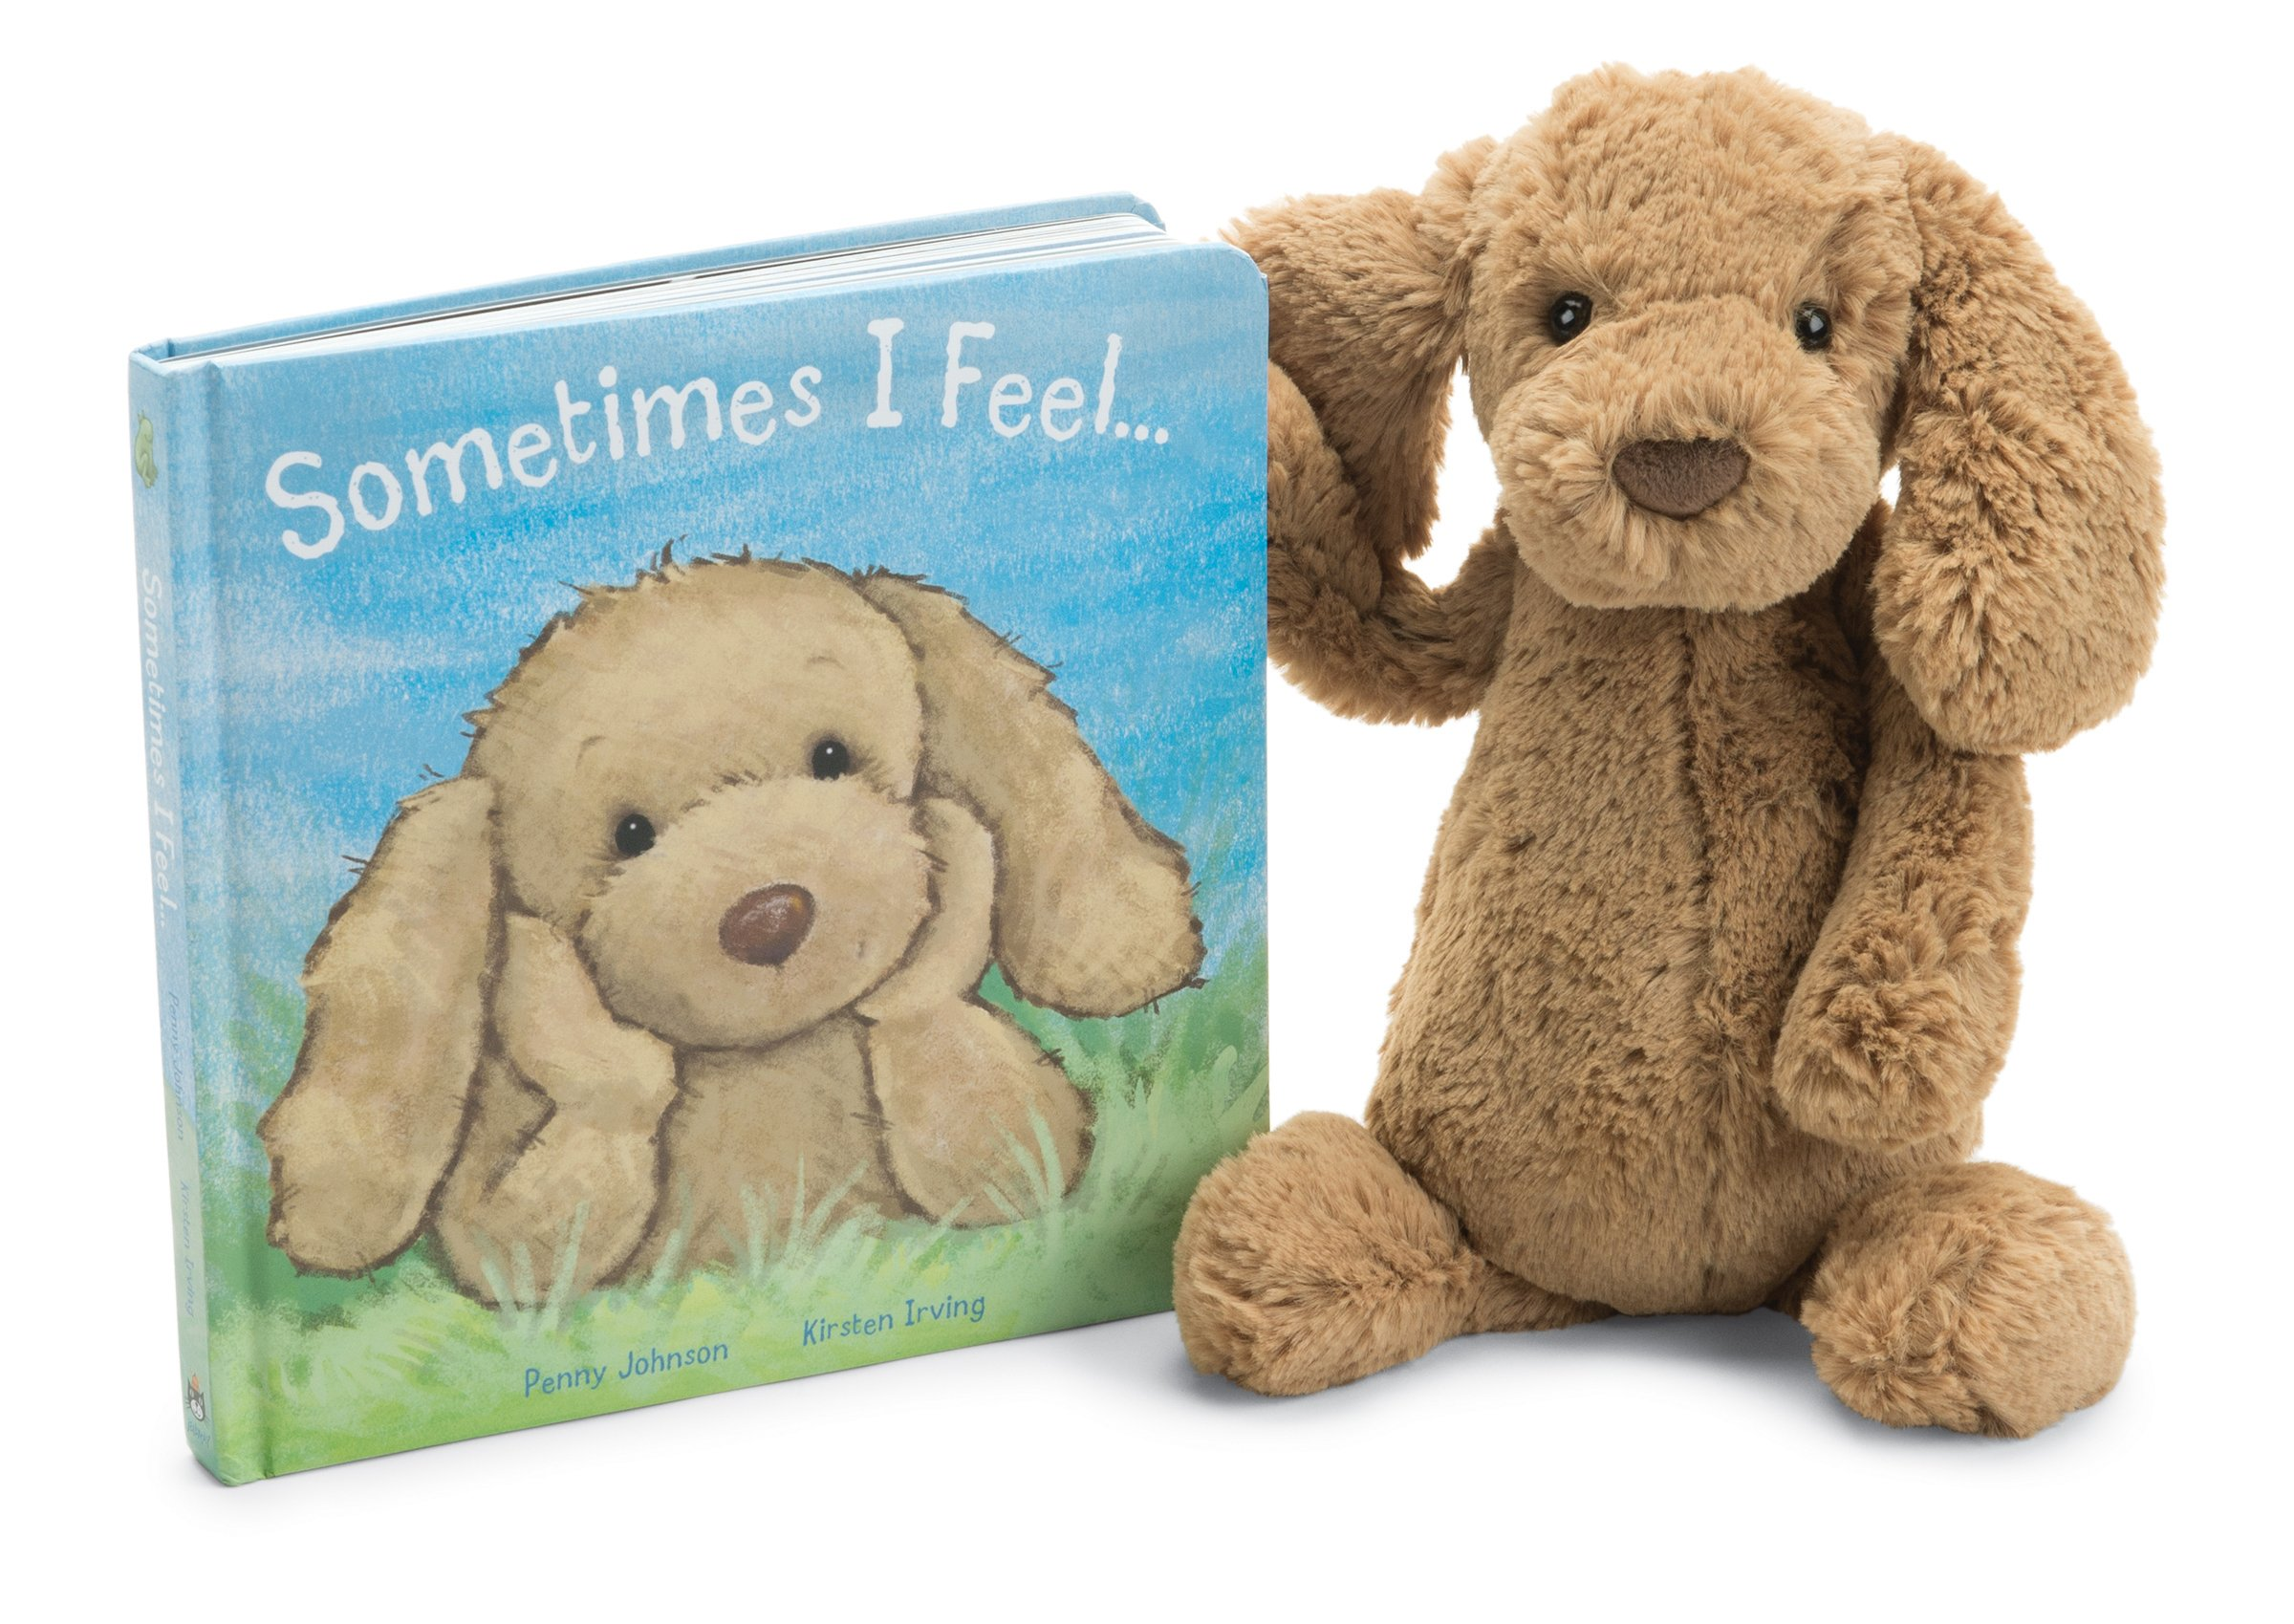 Jellycat Sometimes I Feel Board Book and Bashful Toffee Puppy, Medium - 12 inches